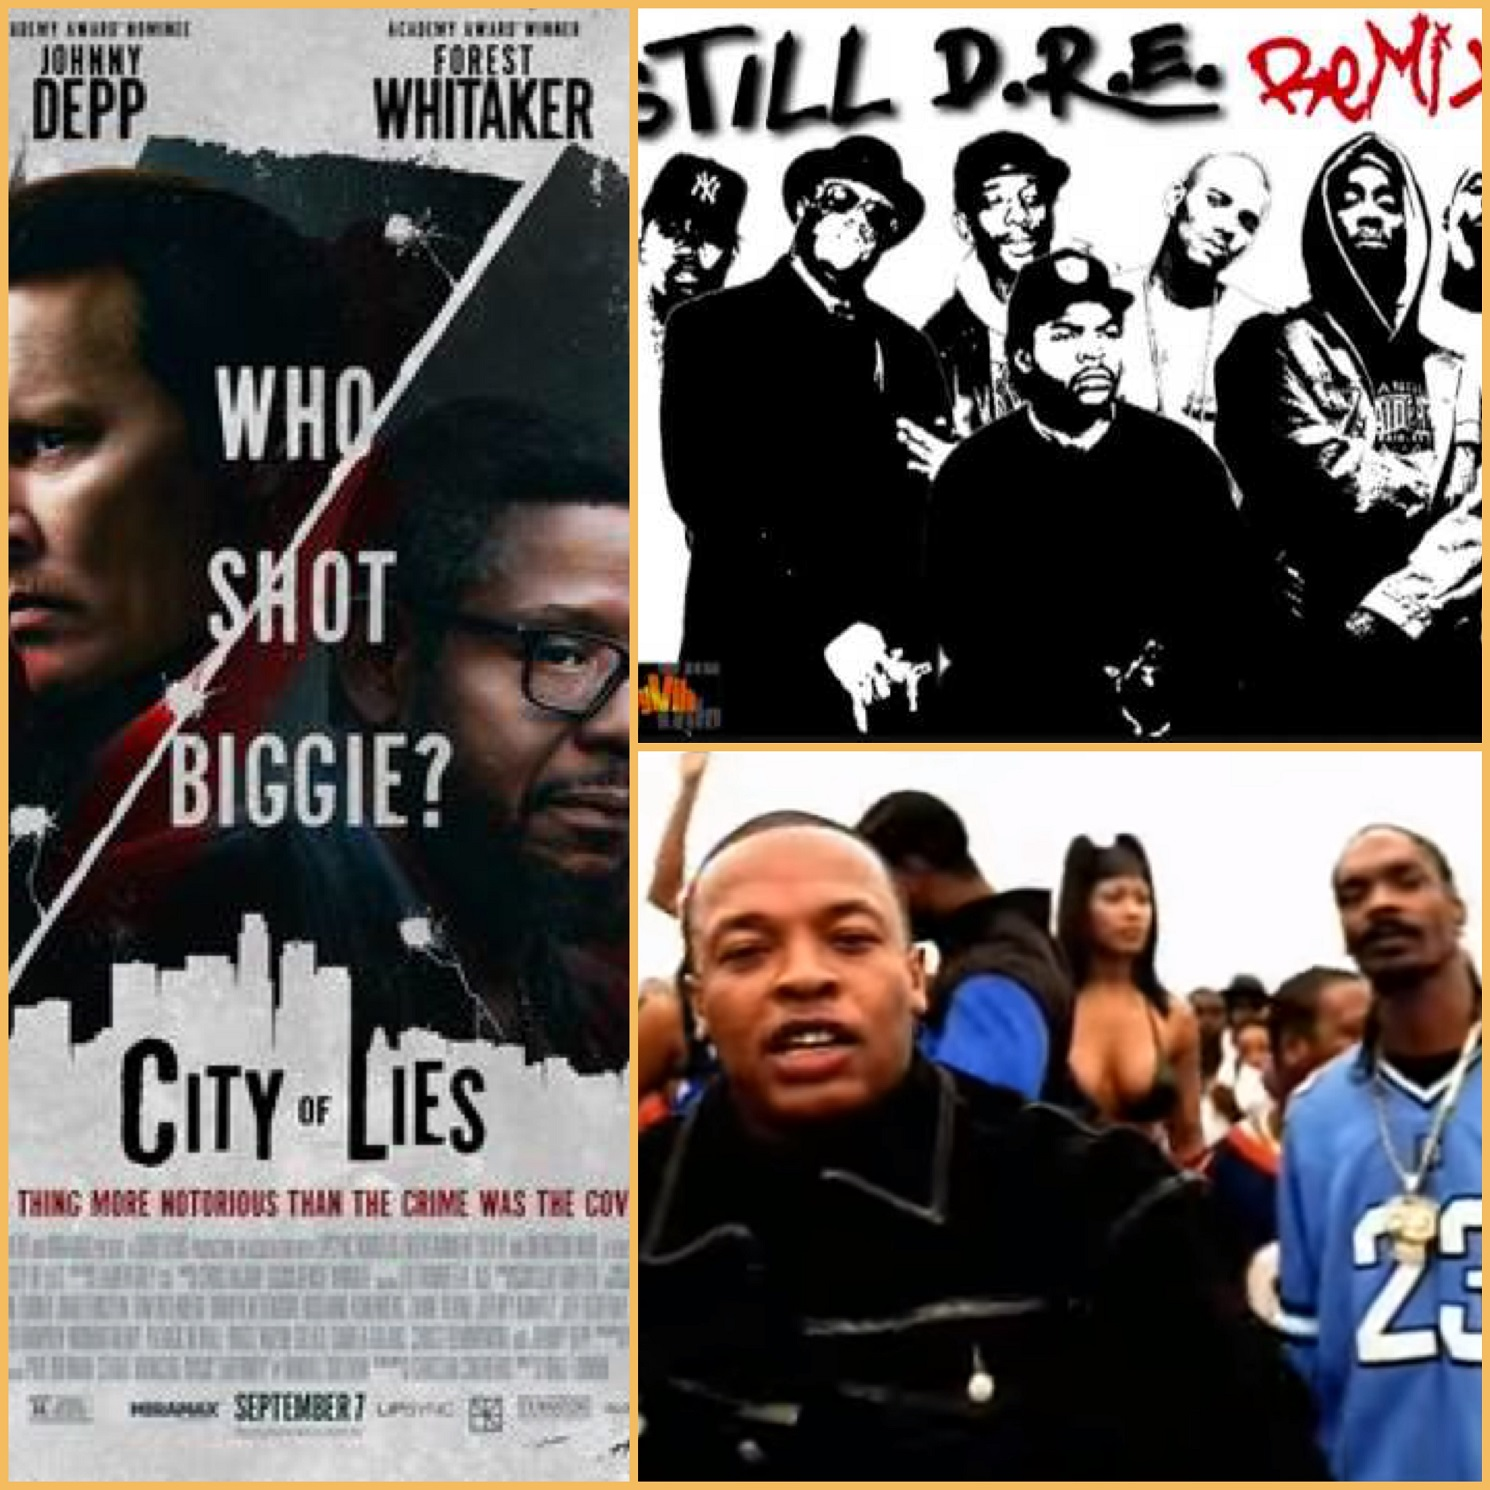 city-of-lies-straight-outta-compton-the-defiant-ones-ribelli-2pac-tupac-biggie-considerazioni-riflessioni-insta-thoughts-cinema-musica